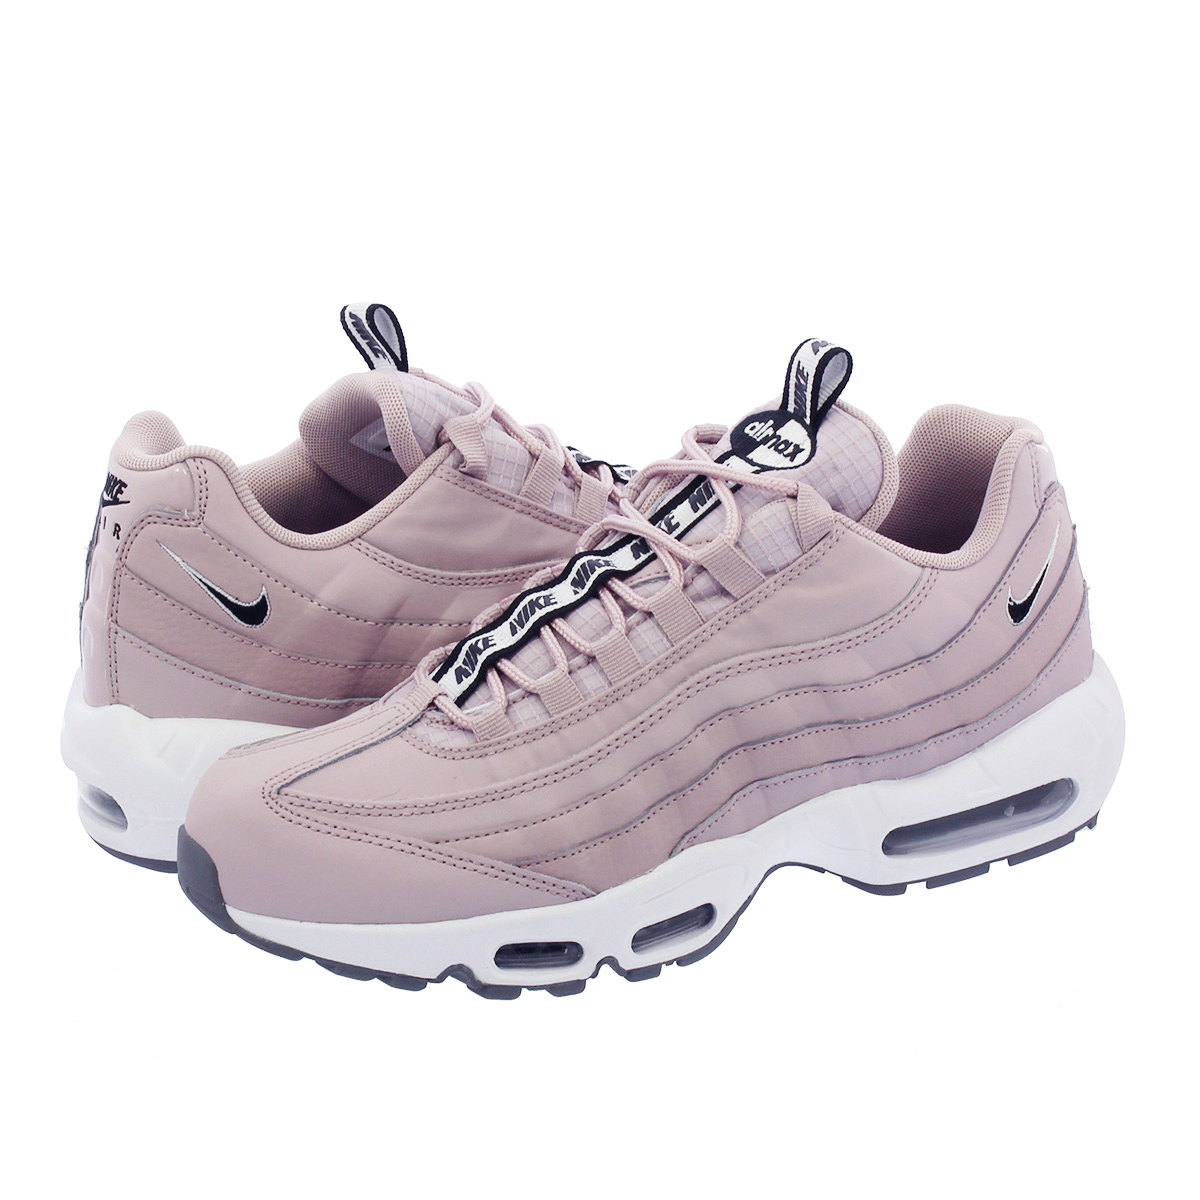 online store 0df0a 5e9be NIKE AIR MAX 95 SE Kie Ney AMAX 95 SE PARTICLE ROSE/WHITE/COOL GREY/BLACK  aq4129-600